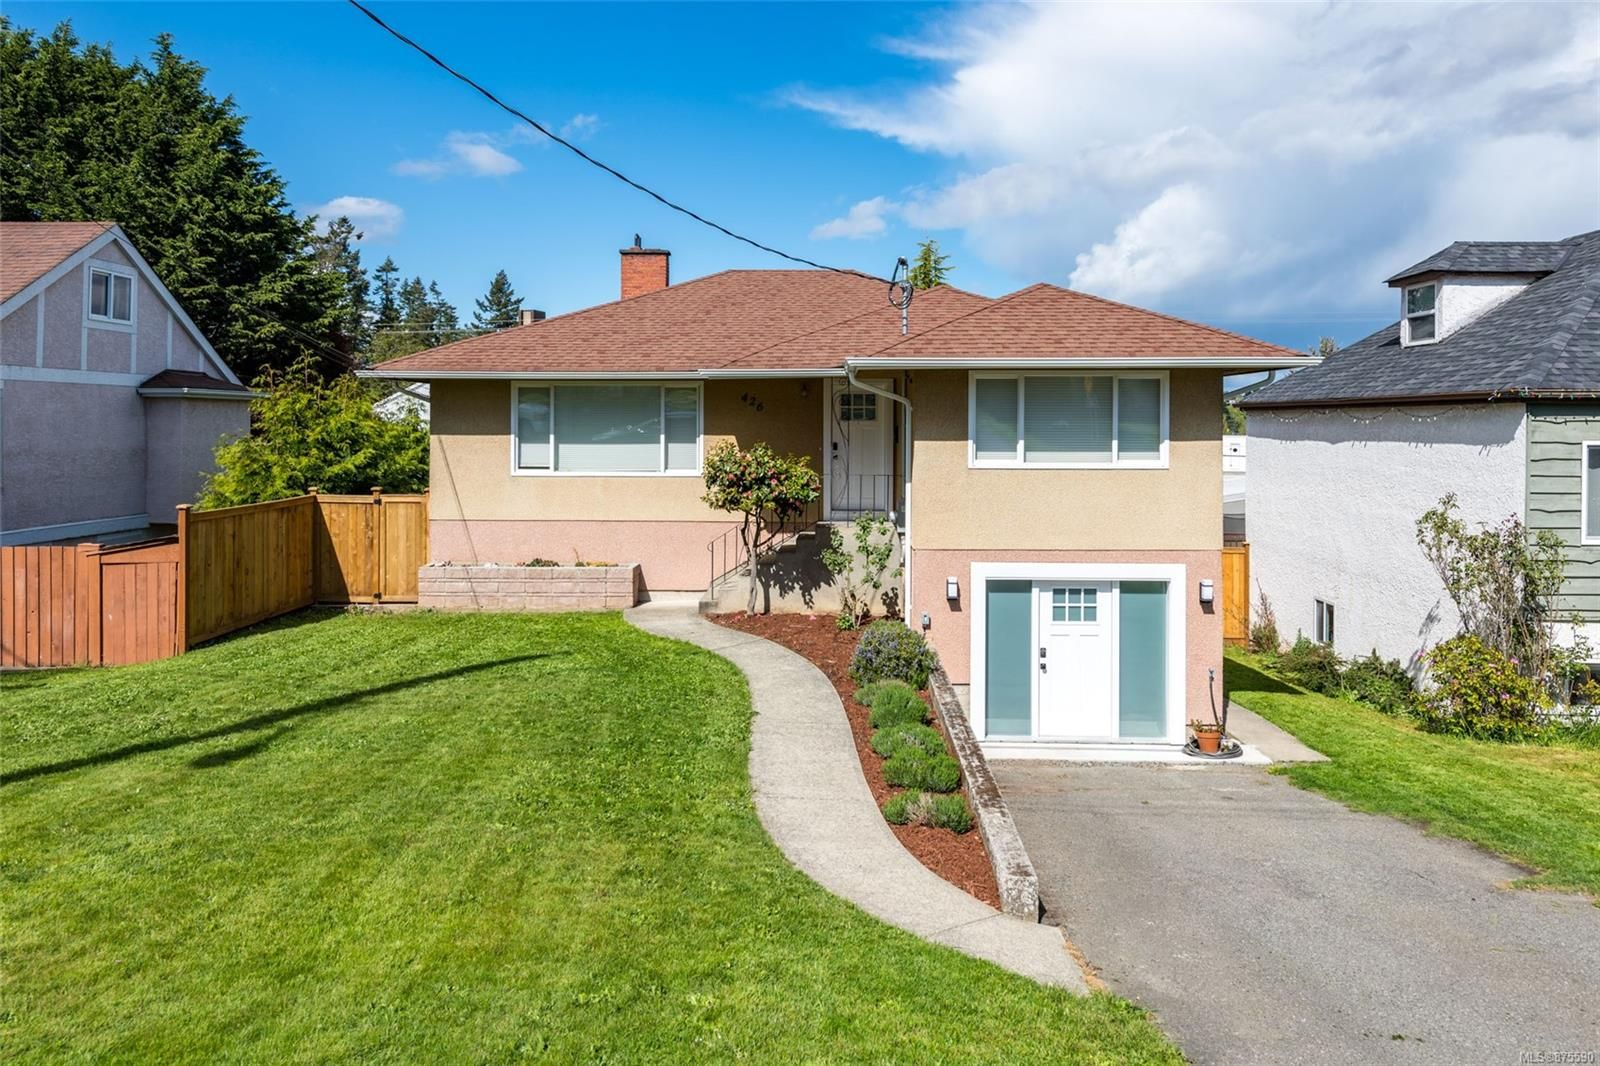 Main Photo: 426 Ker Ave in : SW Gorge House for sale (Saanich West)  : MLS®# 875590